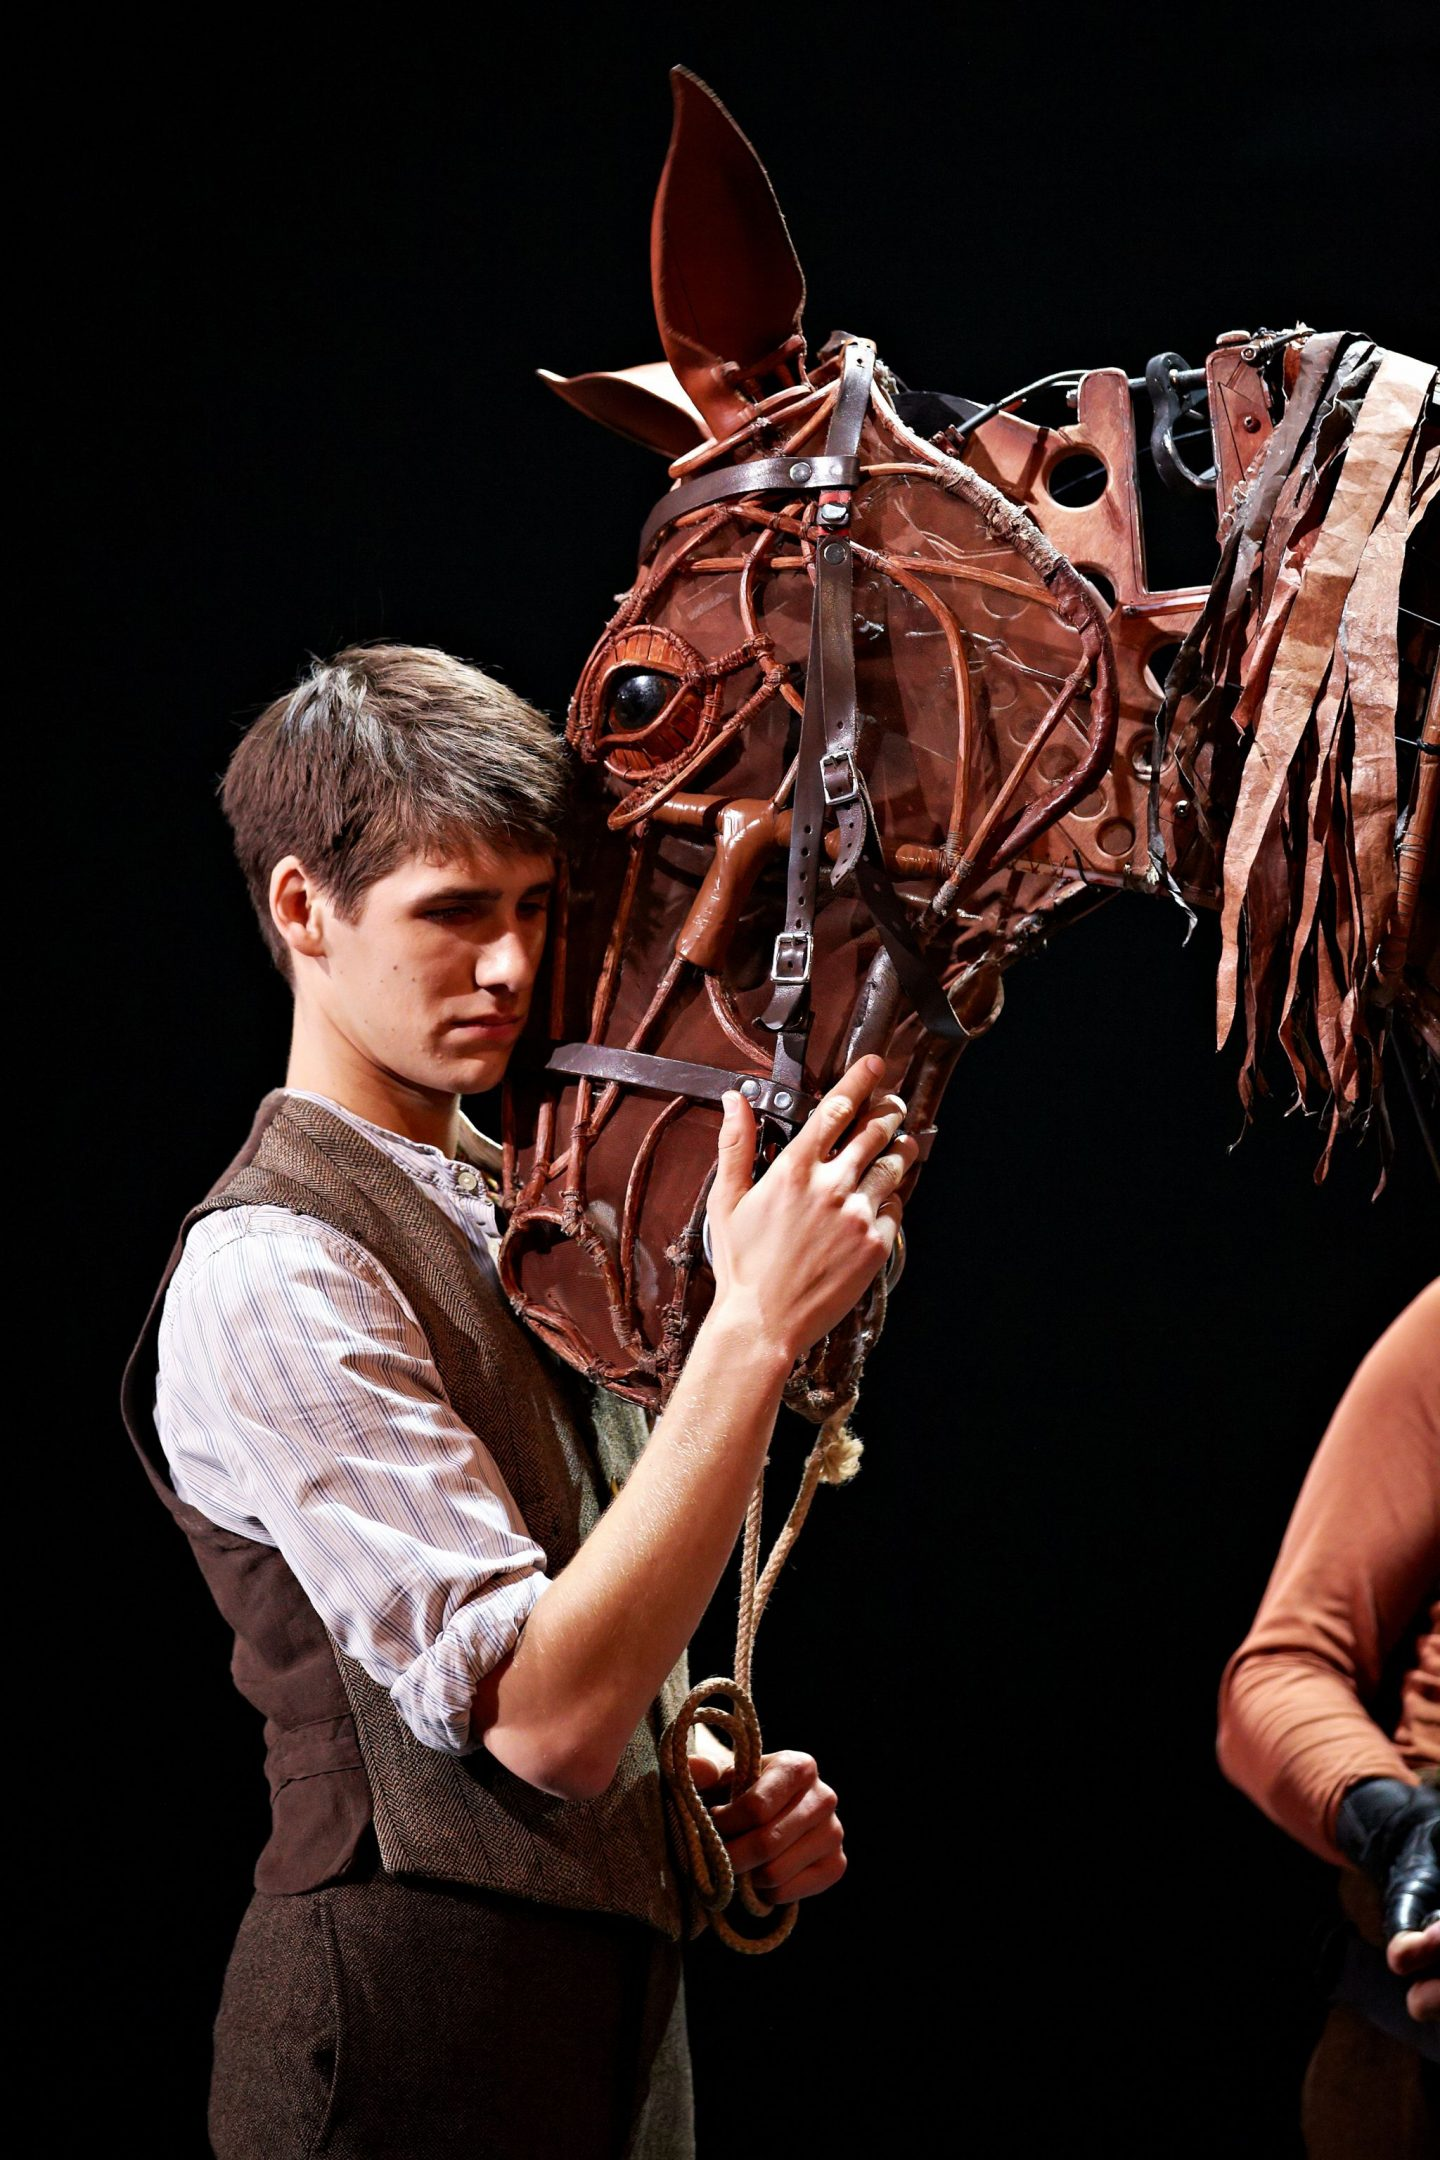 War Horse at the New London Theatre Photo by Brinkhoff Mögenburg 852-172